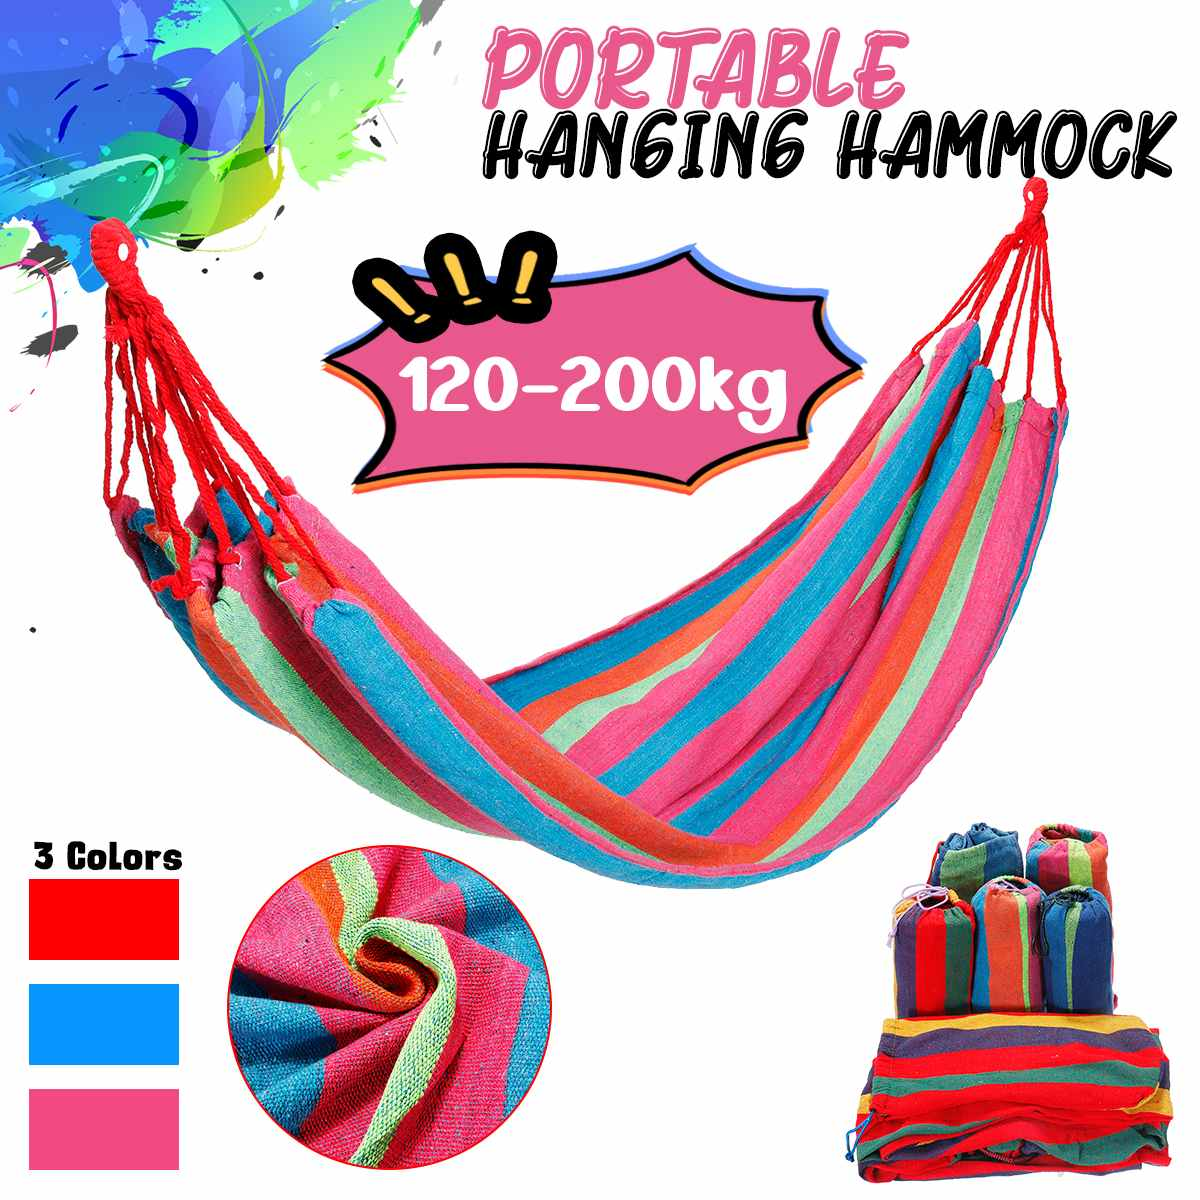 1/2 Person Portable Rope Hanging Hammock Swing Bed Camping Hiking Travel Outdoor Sleep Great Tolerance Lightweight Canvas1/2 Person Portable Rope Hanging Hammock Swing Bed Camping Hiking Travel Outdoor Sleep Great Tolerance Lightweight Canvas